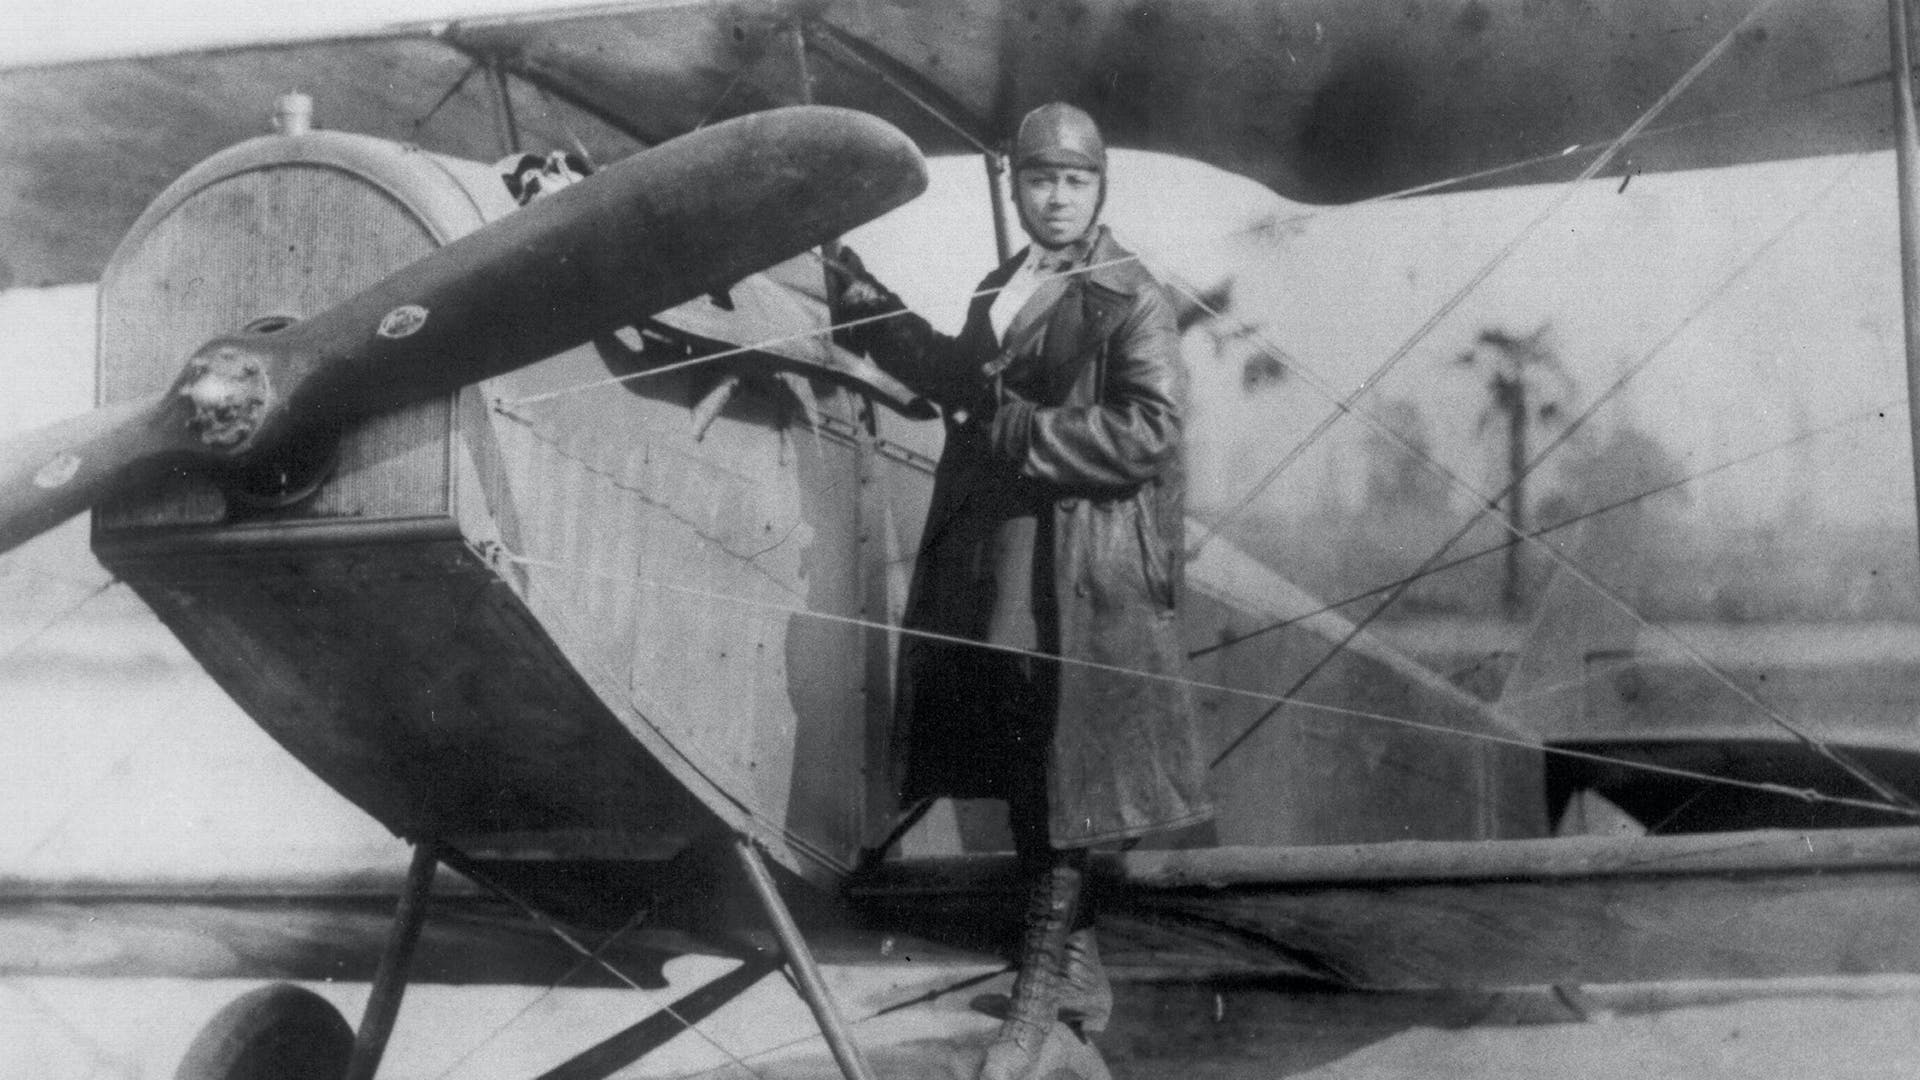 Why Bessie Coleman learn to fly in France